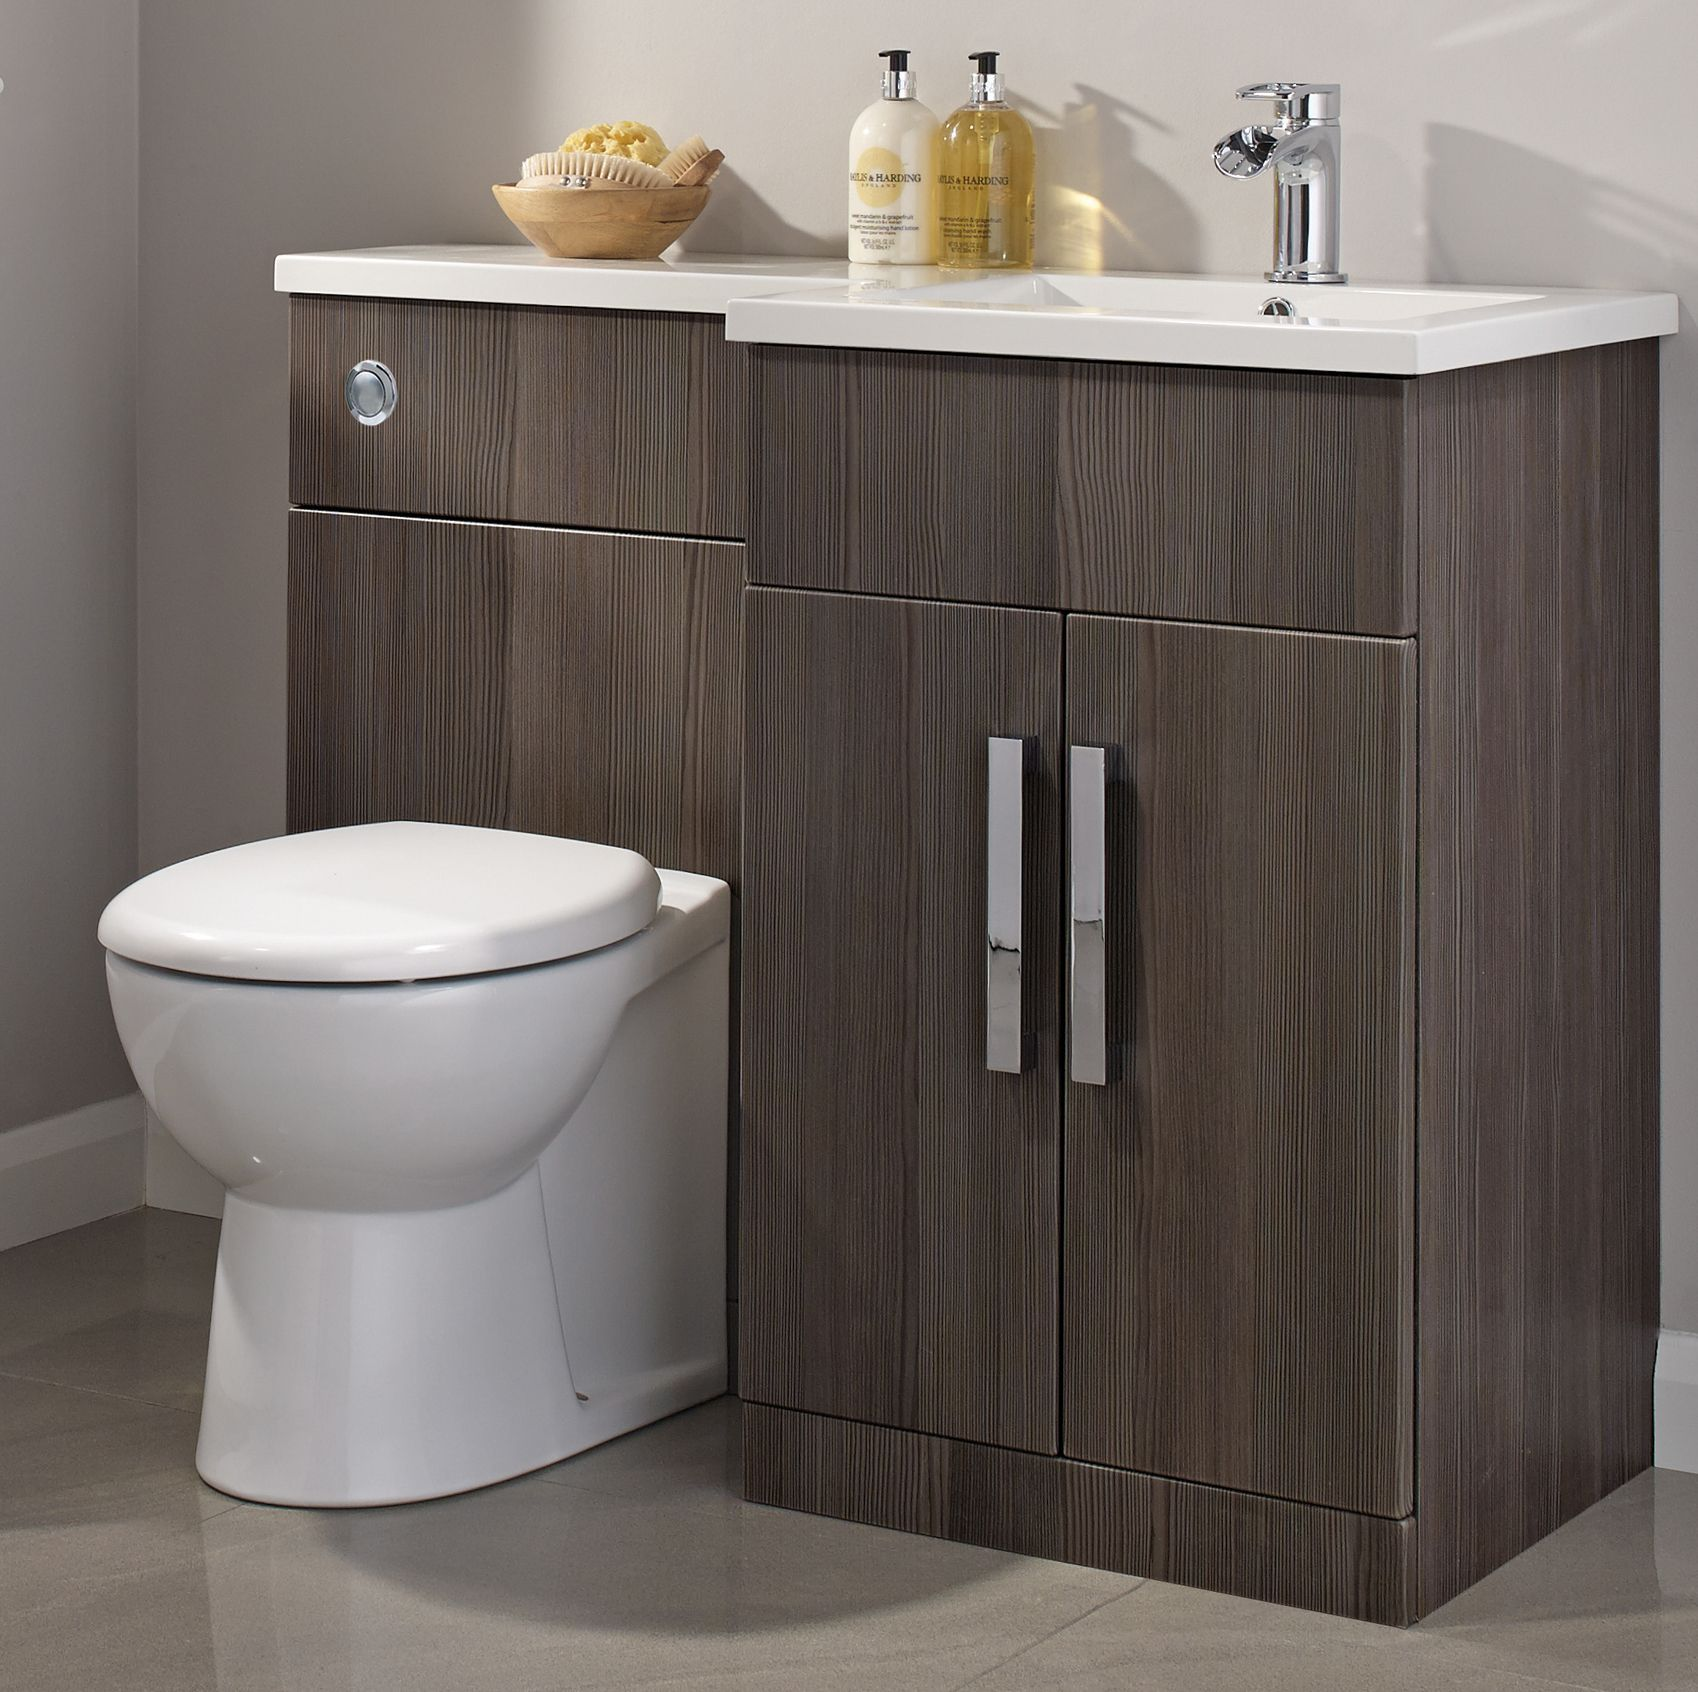 Cooke lewis ardesio bodega grey rh vanity toilet pack for Bathroom storage ideas john lewis